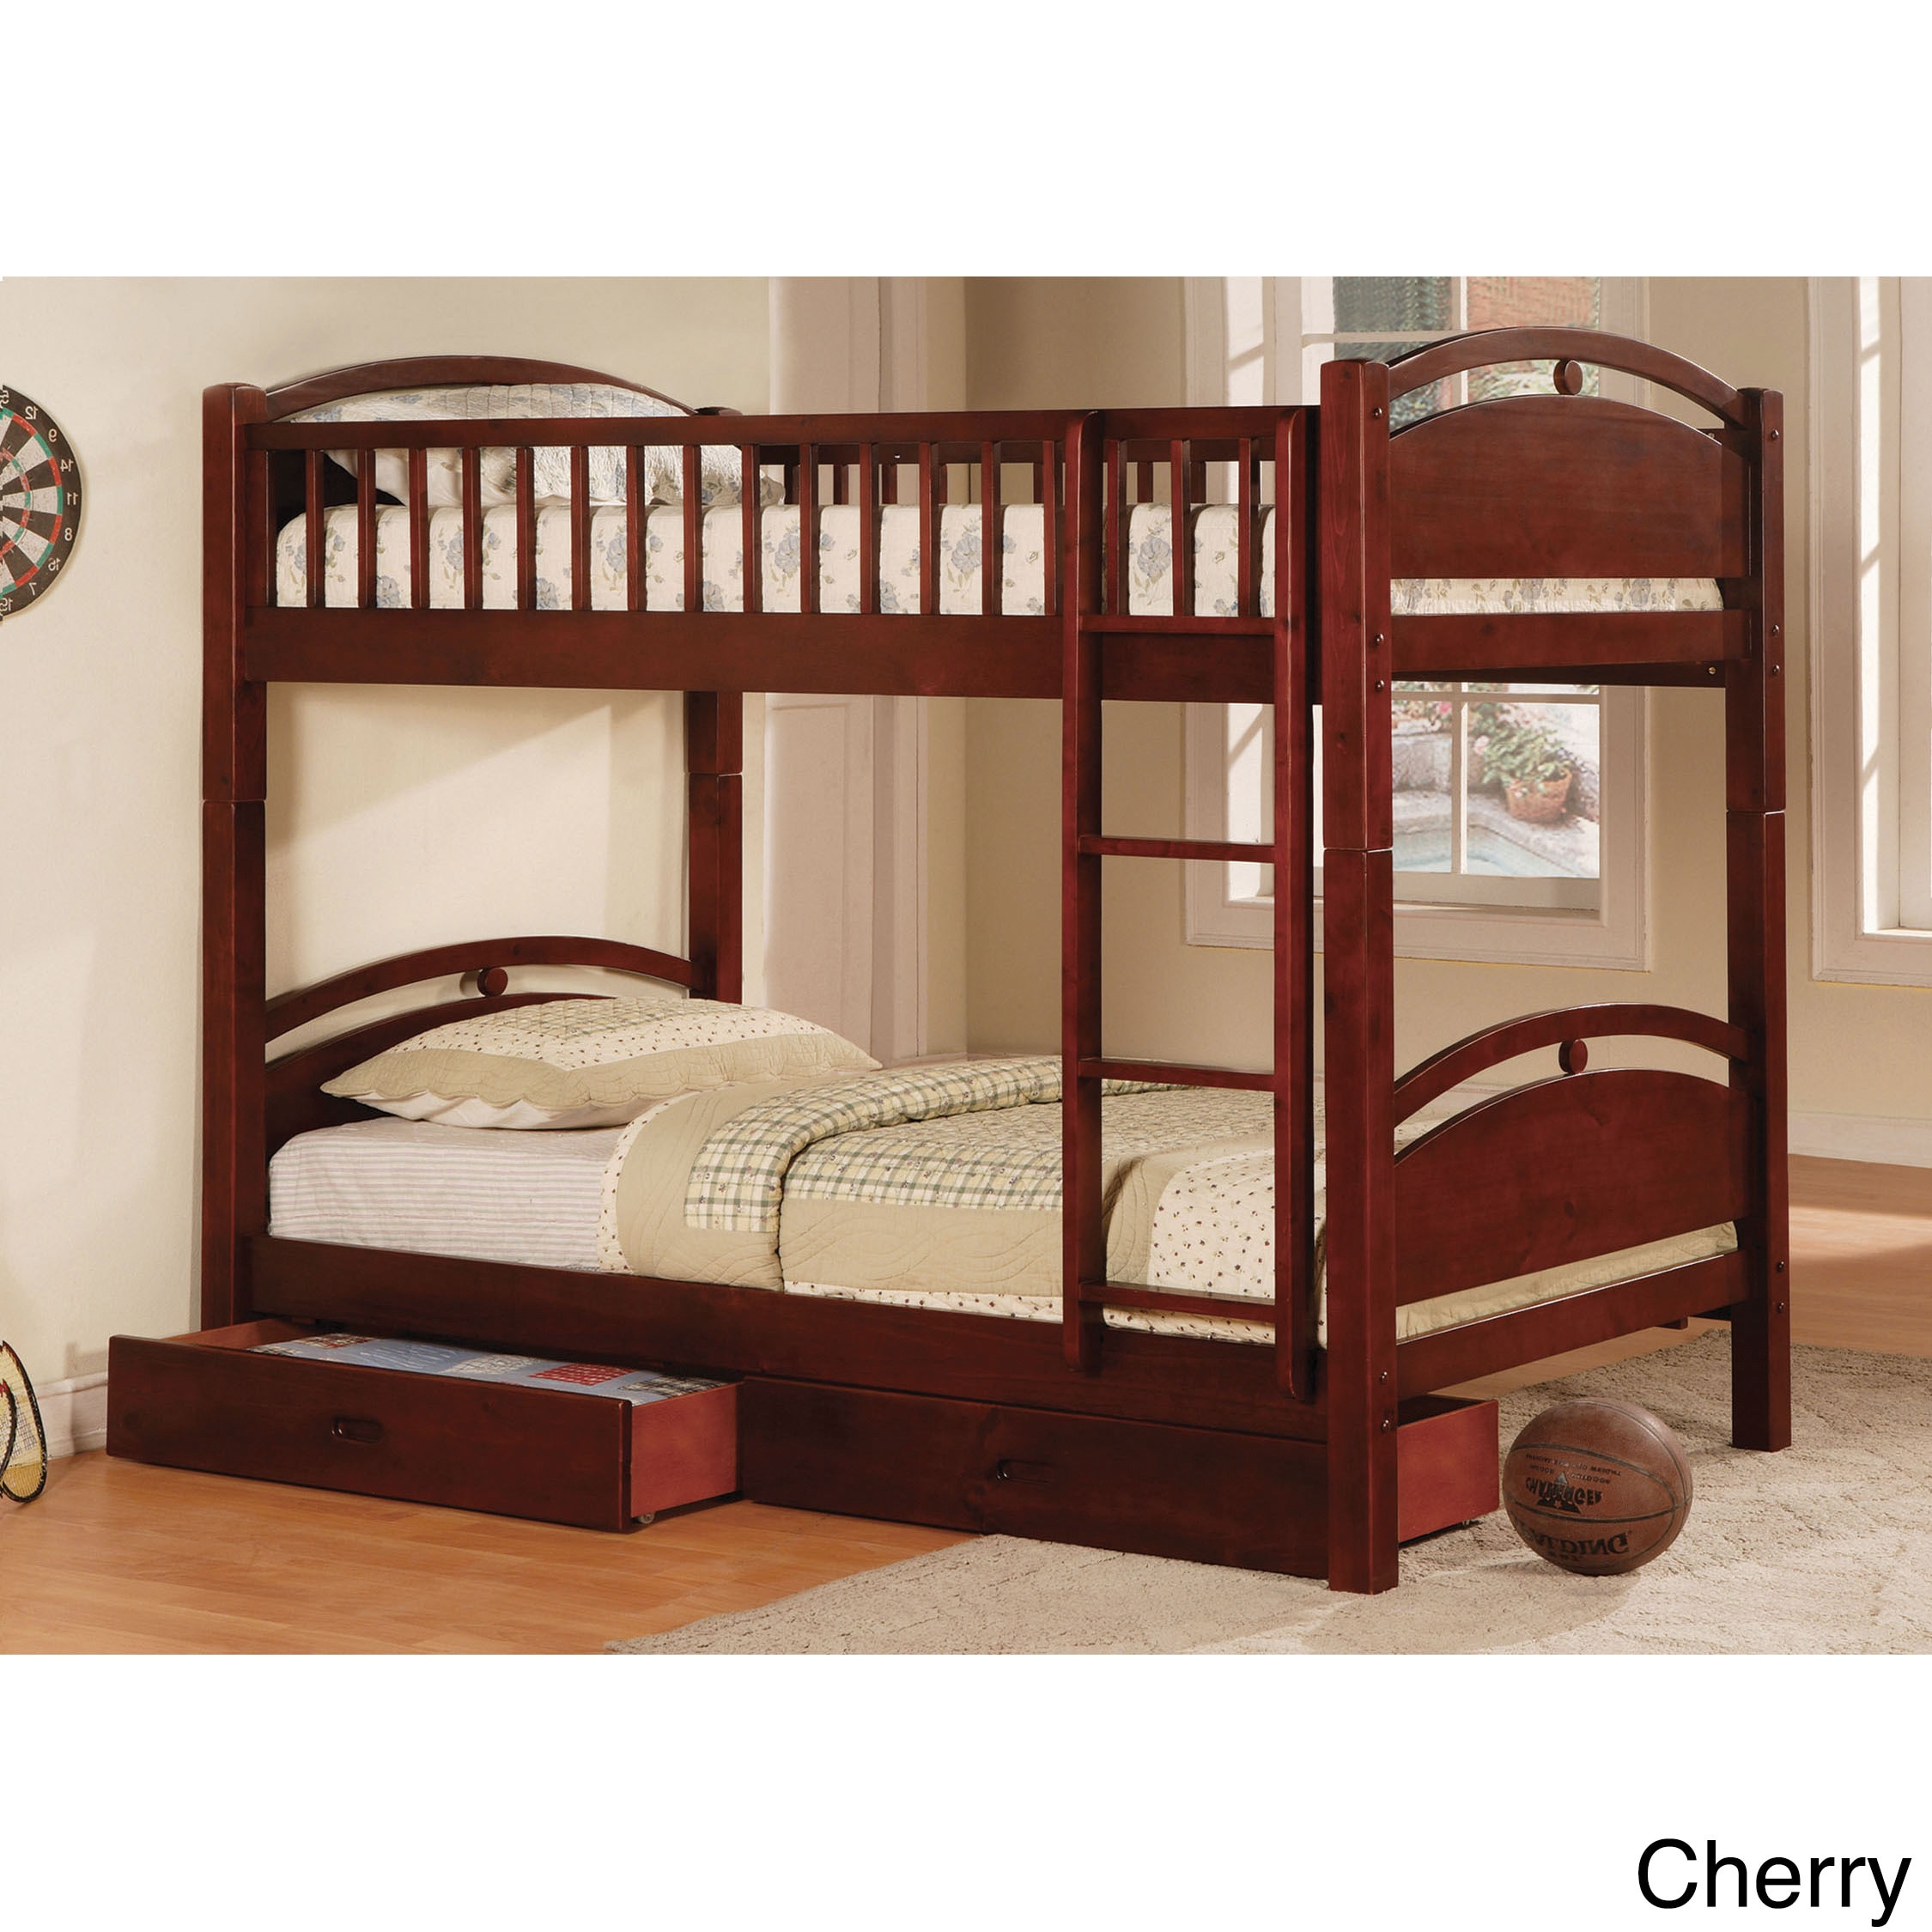 Furniture of America Arcmille Twin over Twin Bunk Bed wit...